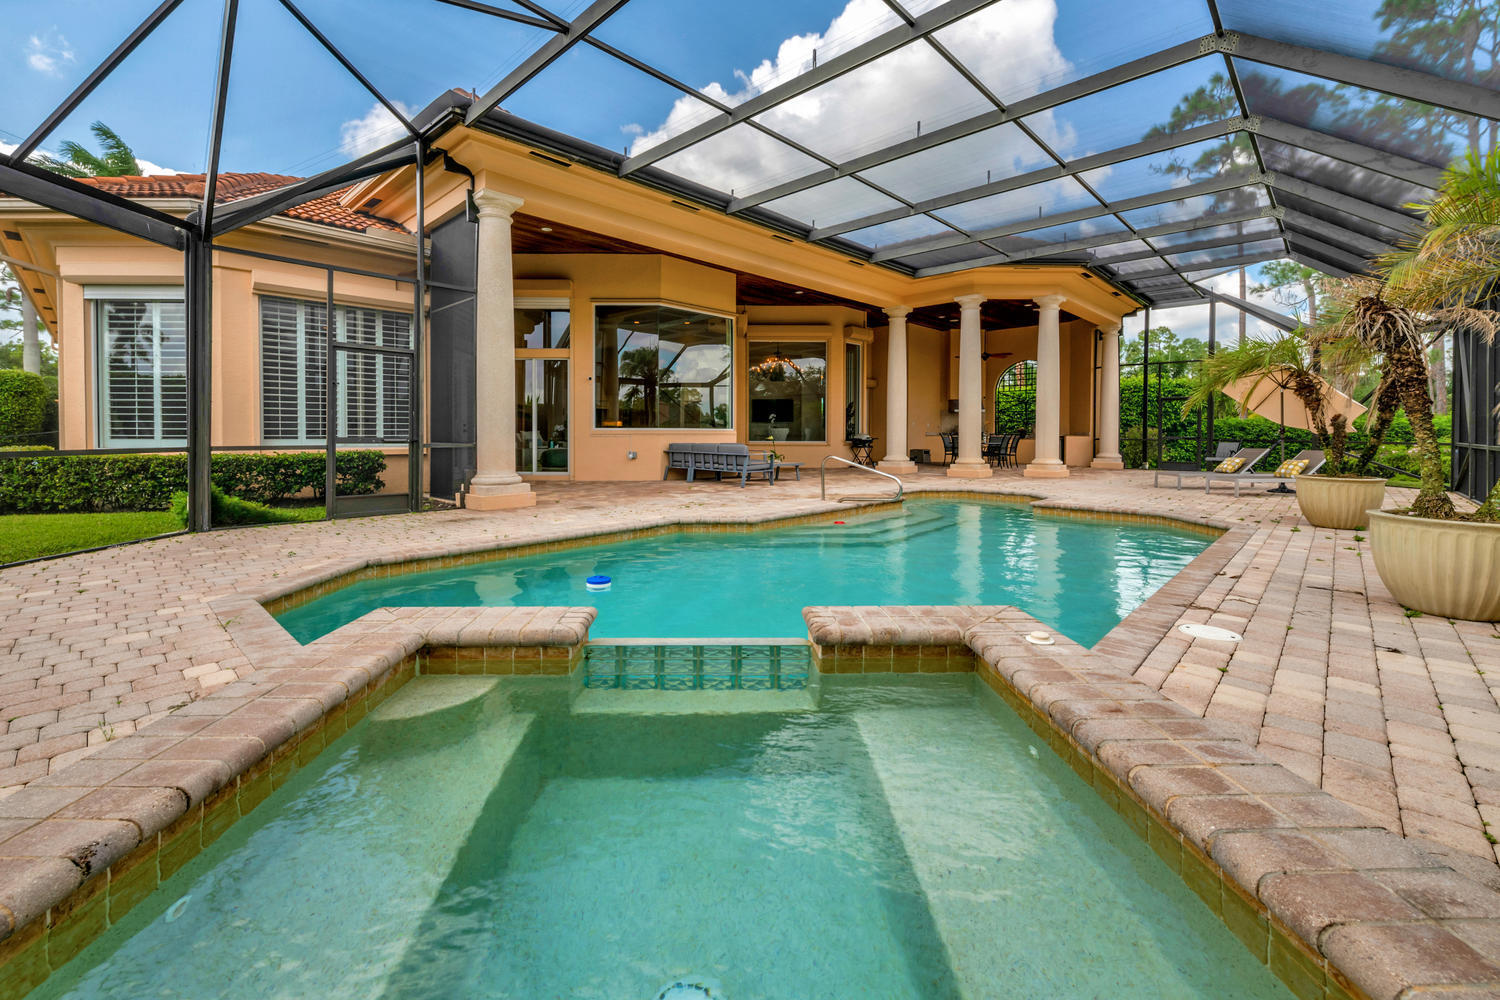 WEST PALM BEACH PROPERTY